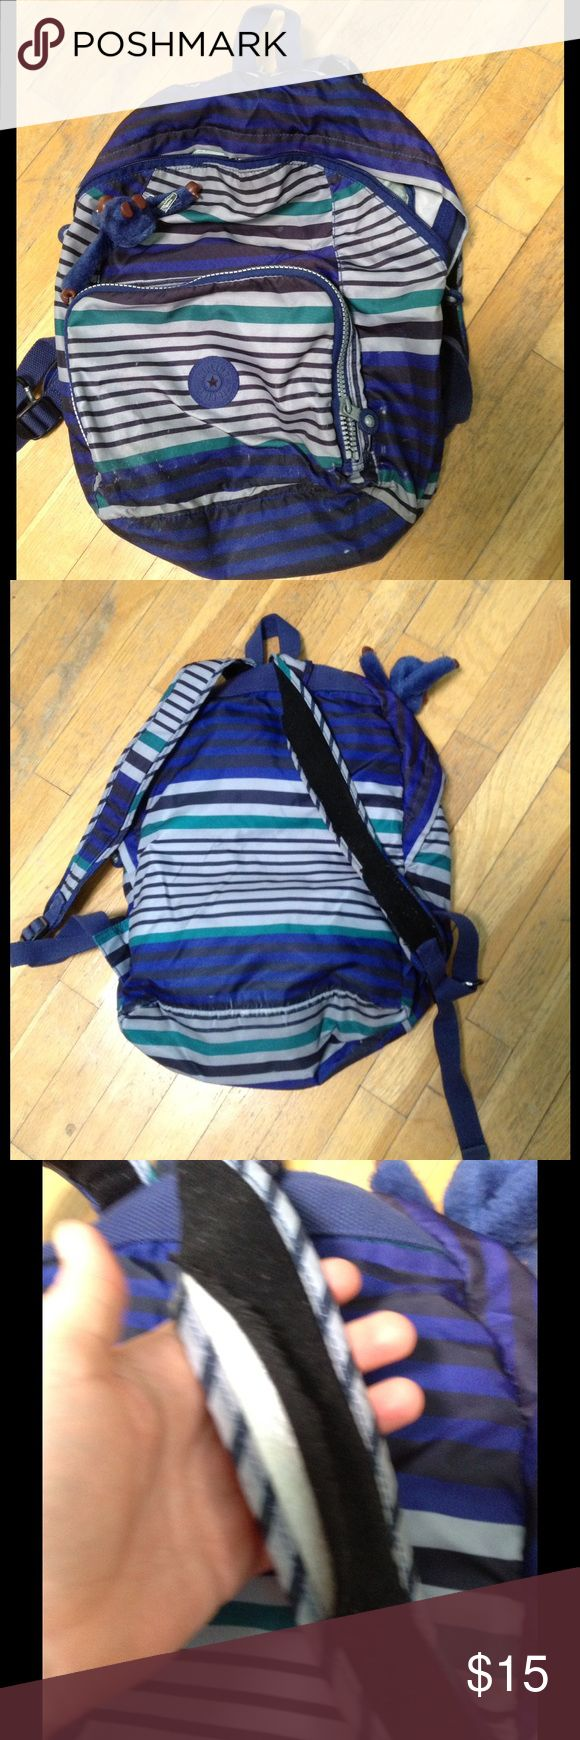 Rare Kipling blue striped backpack! Rare Kipling blue striped backpack!  It has a stain on the top, and the shoulder straps need to be re-sewn.  Time for a new owner to give it more love than I can.😜 Kipling Bags Backpacks